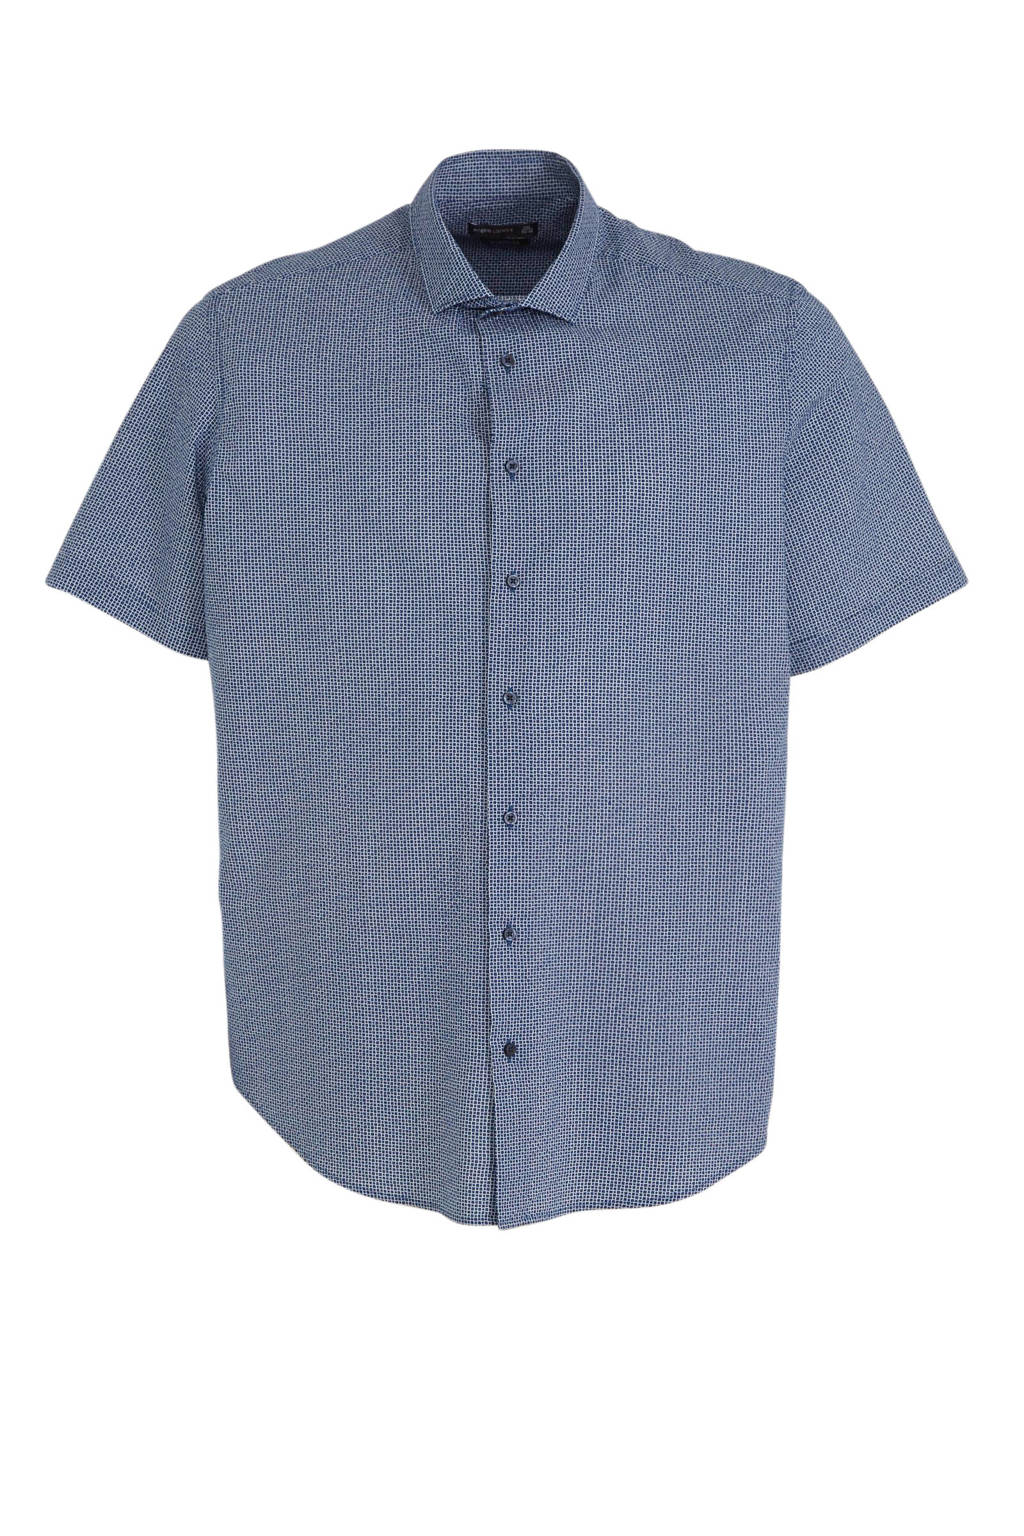 C&A XL Angelo Litrico regular fit overhemd blauw, Blauw